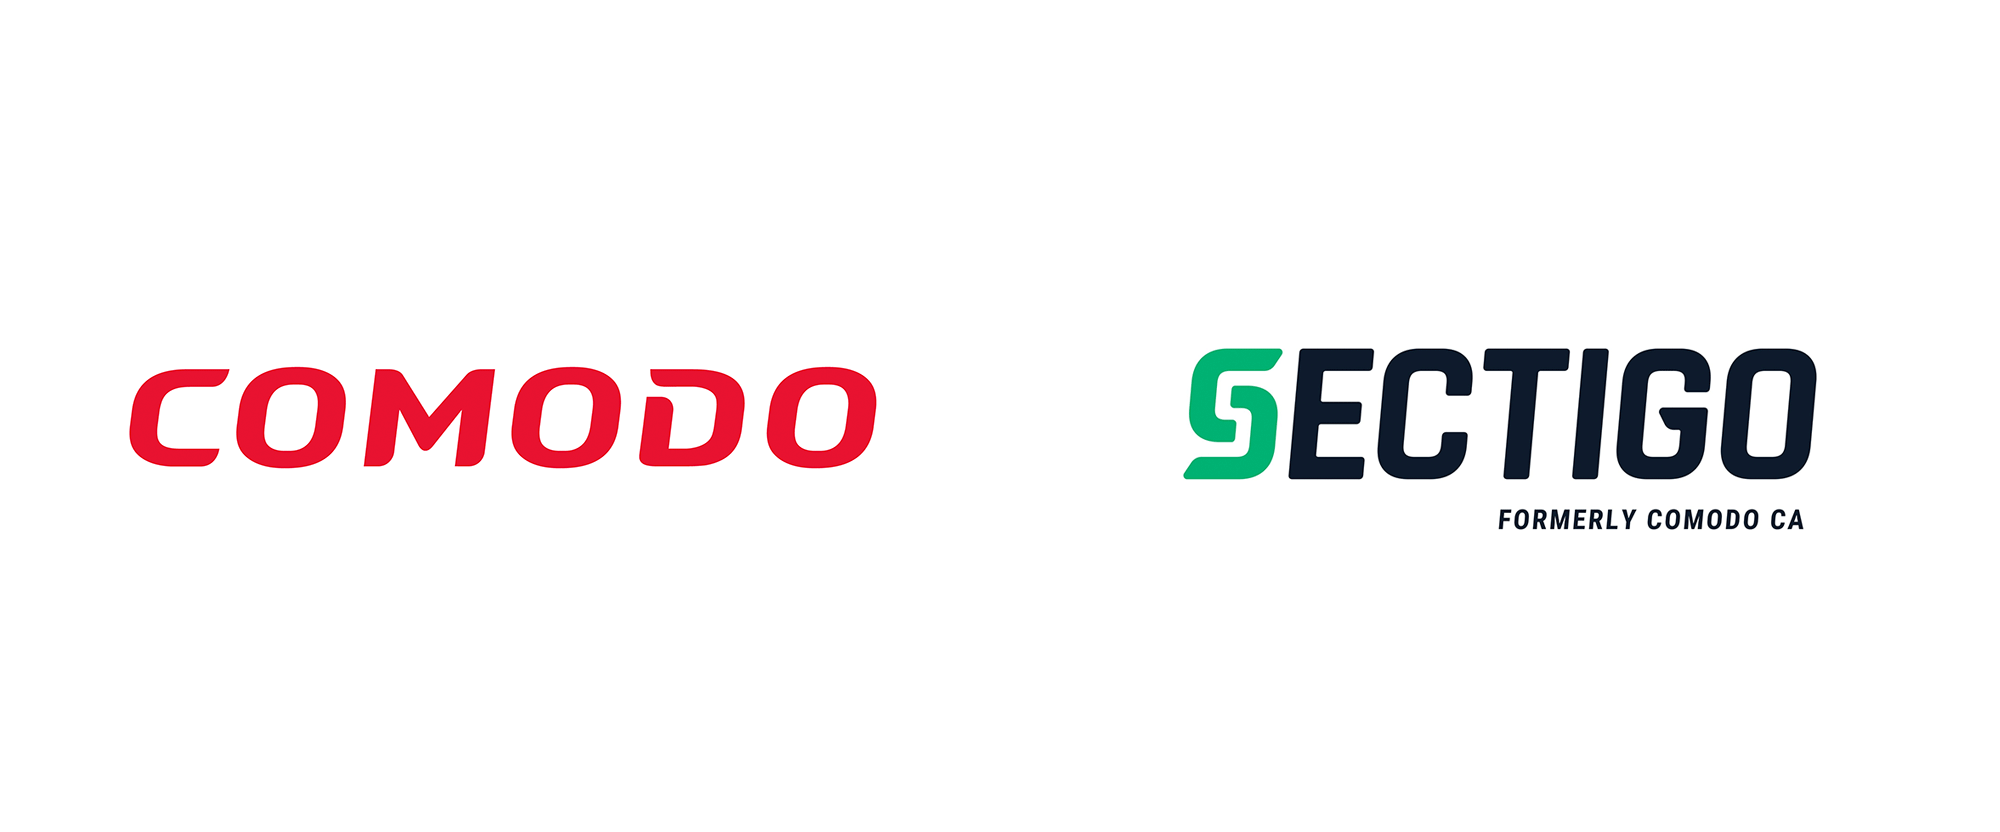 New Name and Logo for Sectigo